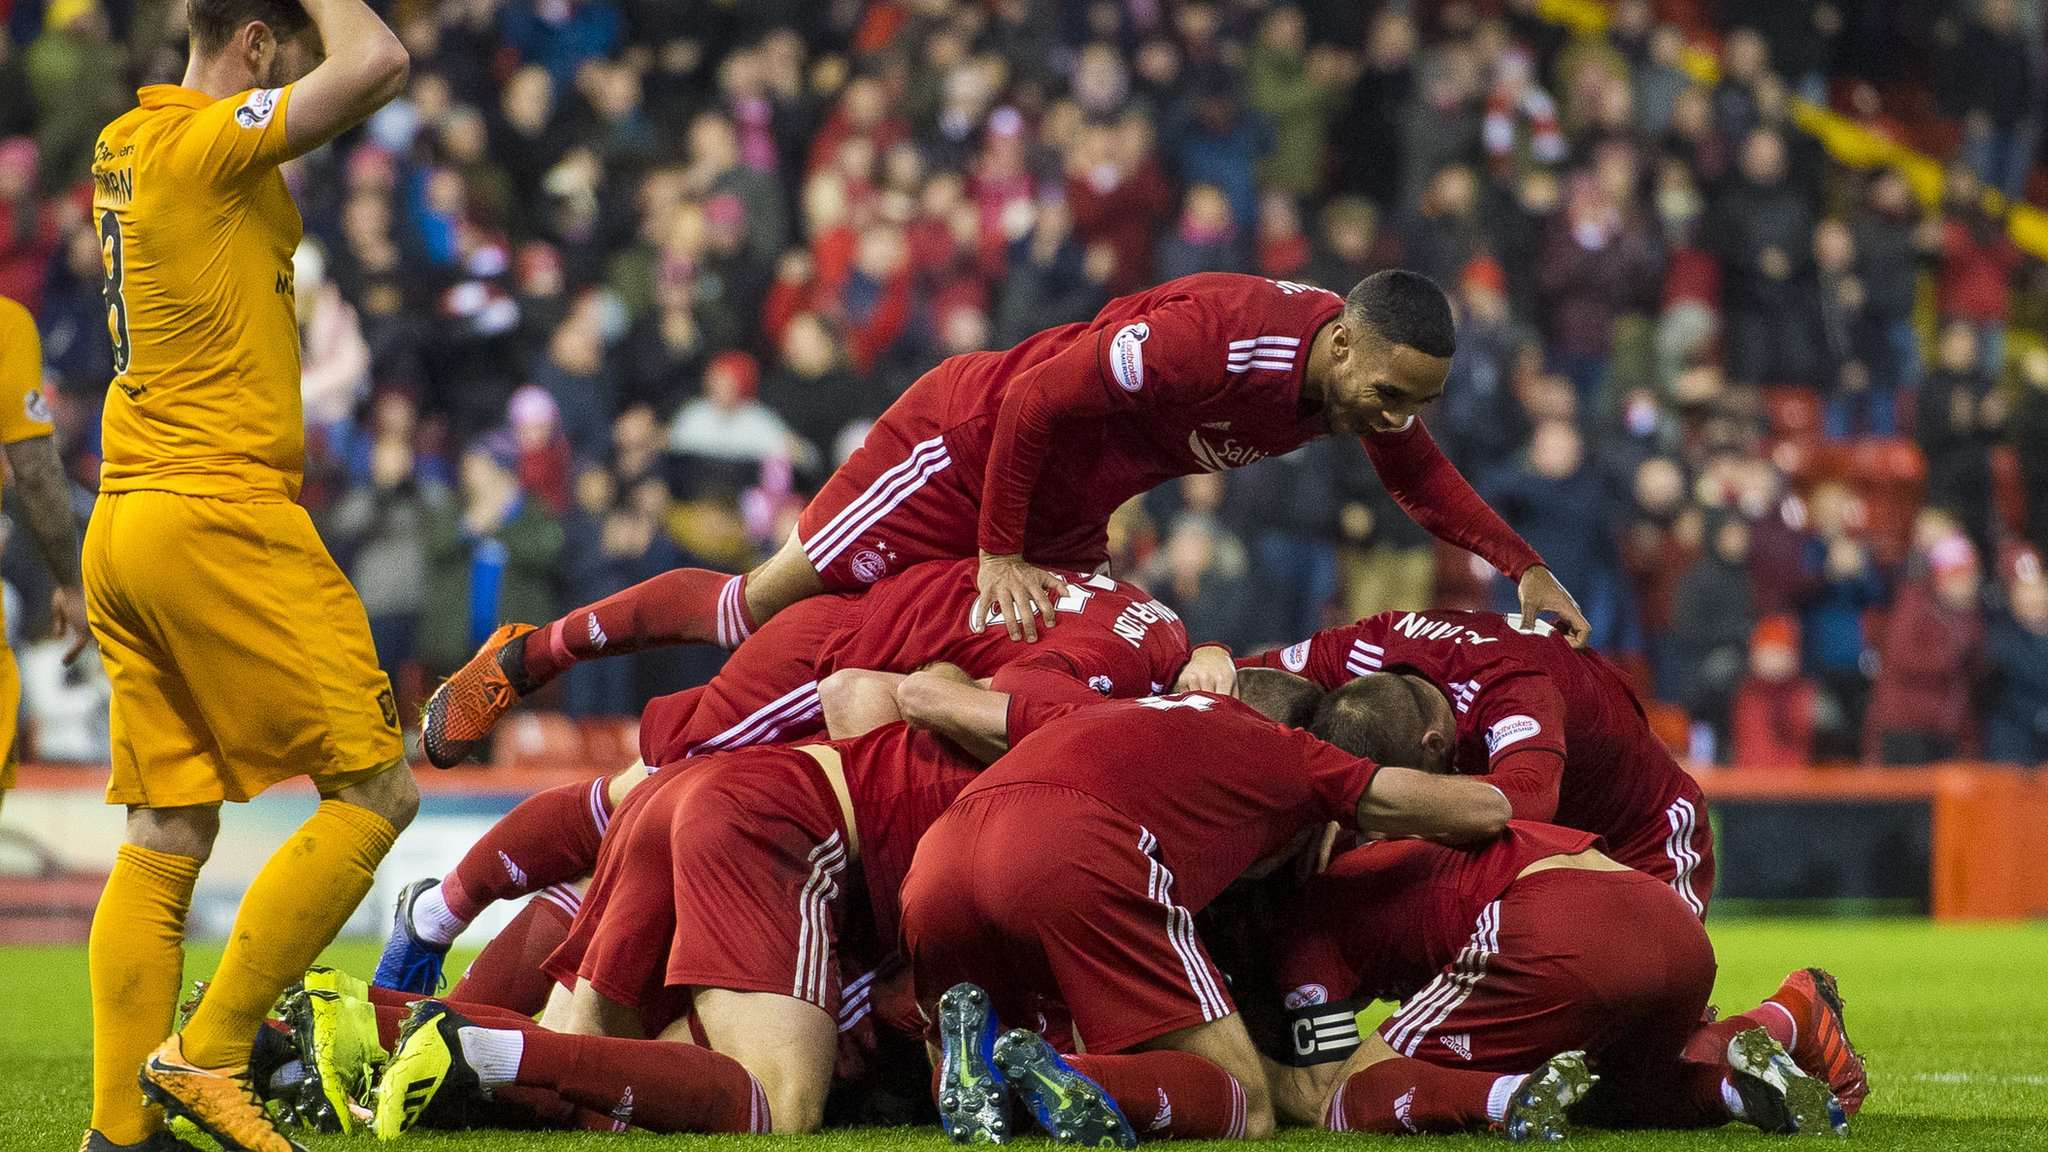 Highlights & report: Dons strike late to seal win over Livi